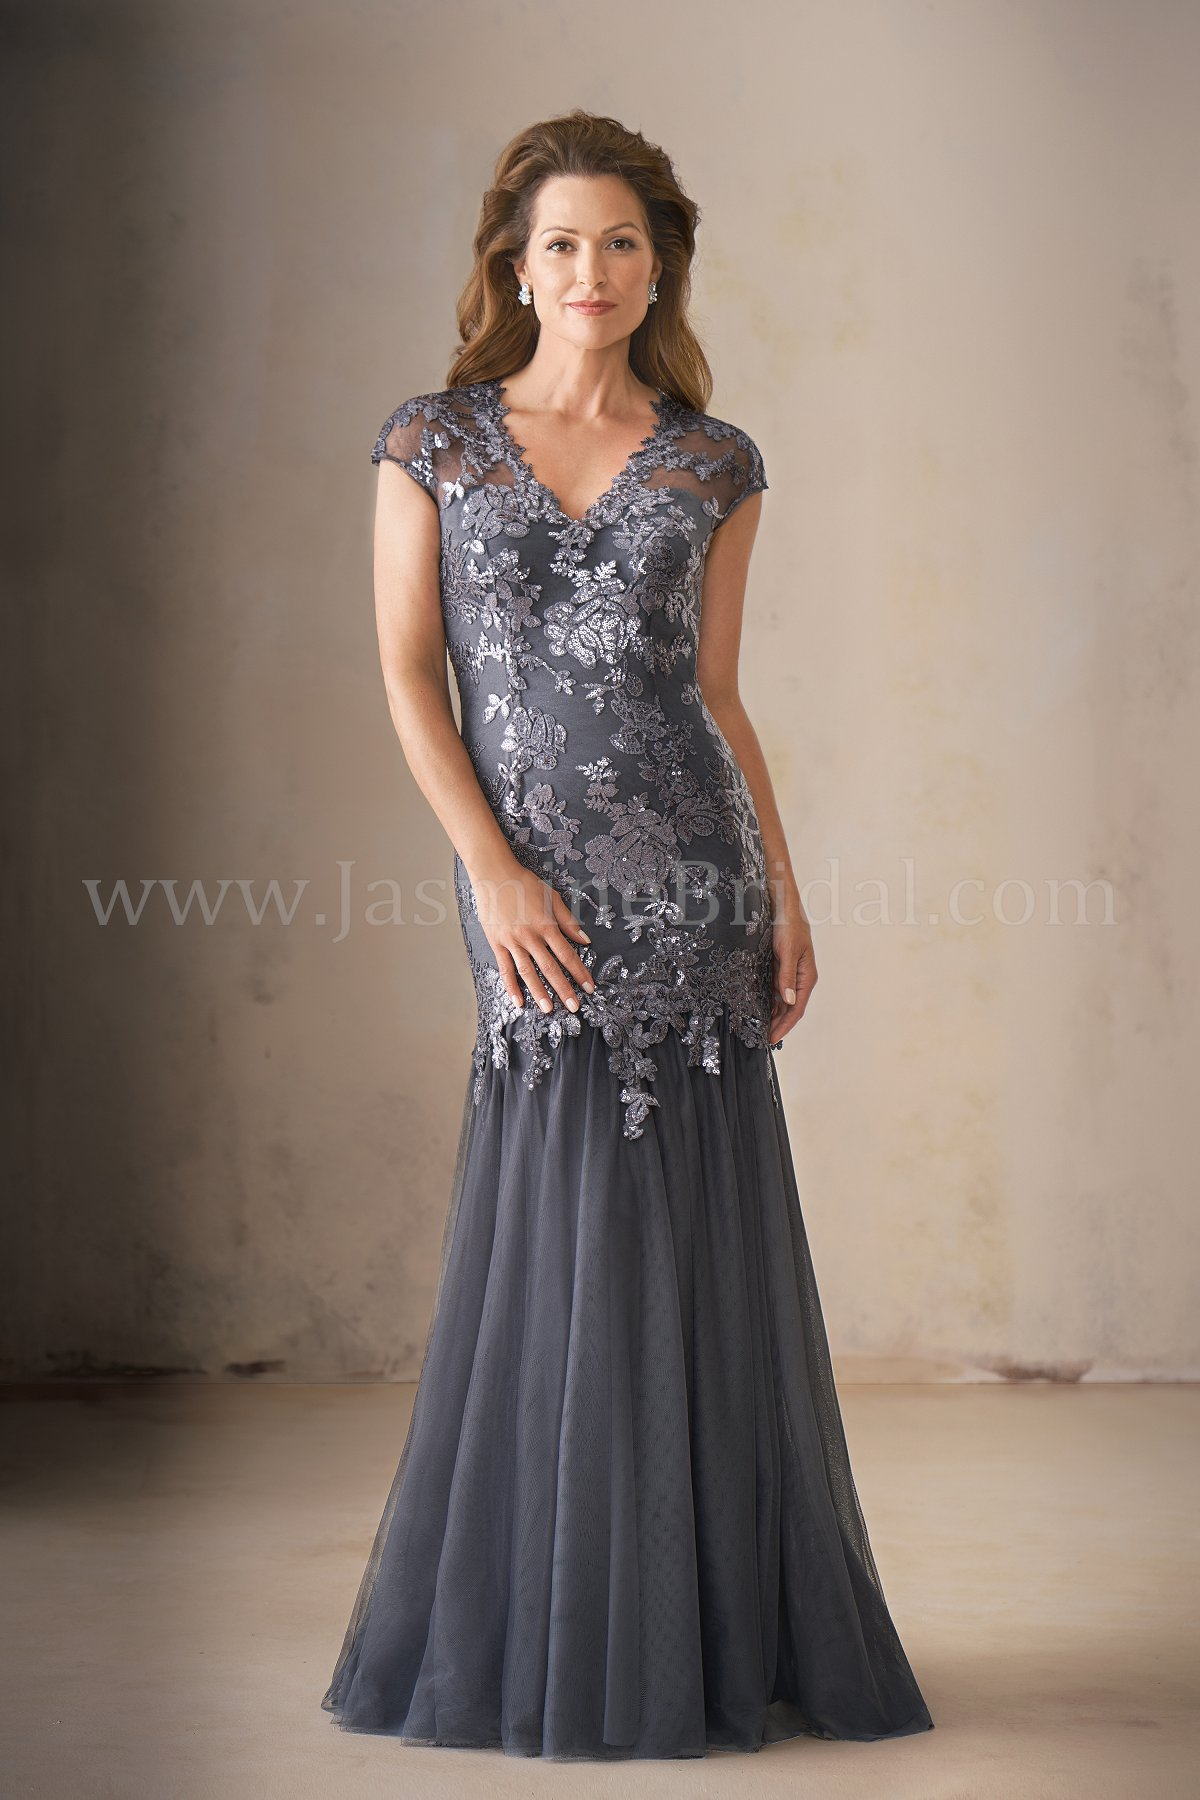 K208015 Long V Neck Sequin Lace Amp Netting Mob Dress With